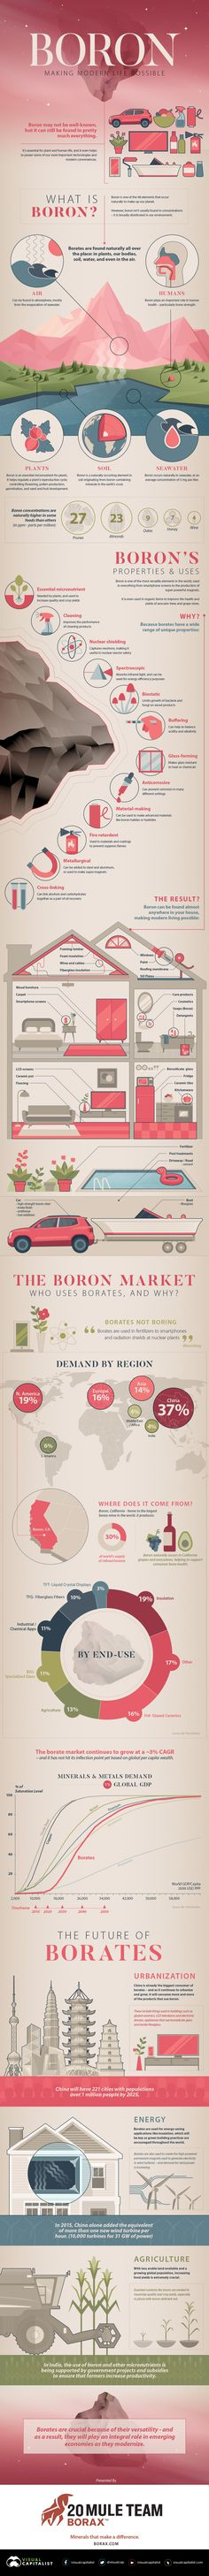 Infographic Of The Day: Boron, Making Modern Life Possible